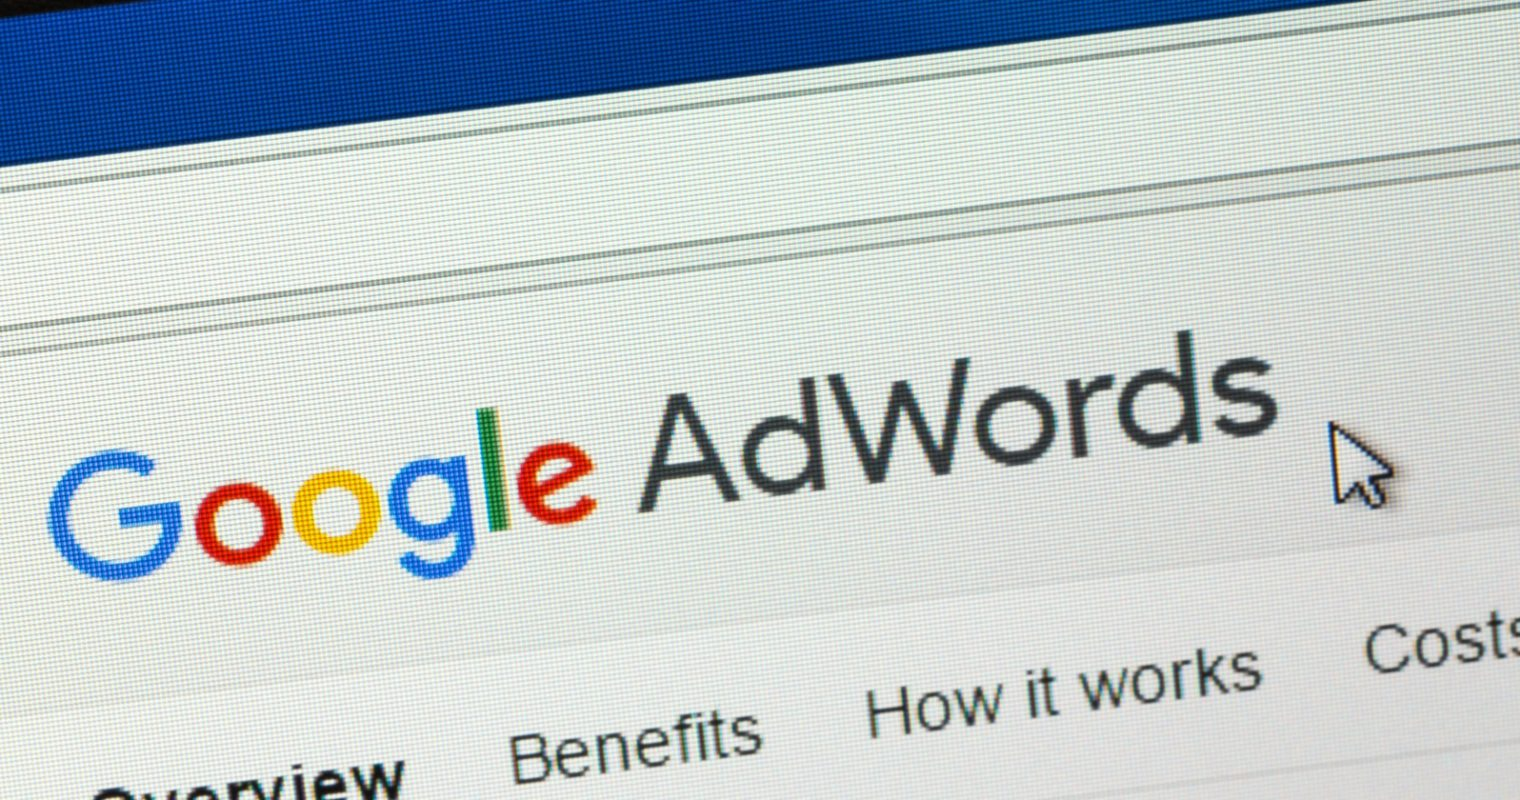 Google AdWords Editor 12 is Now Available: Here's What's New